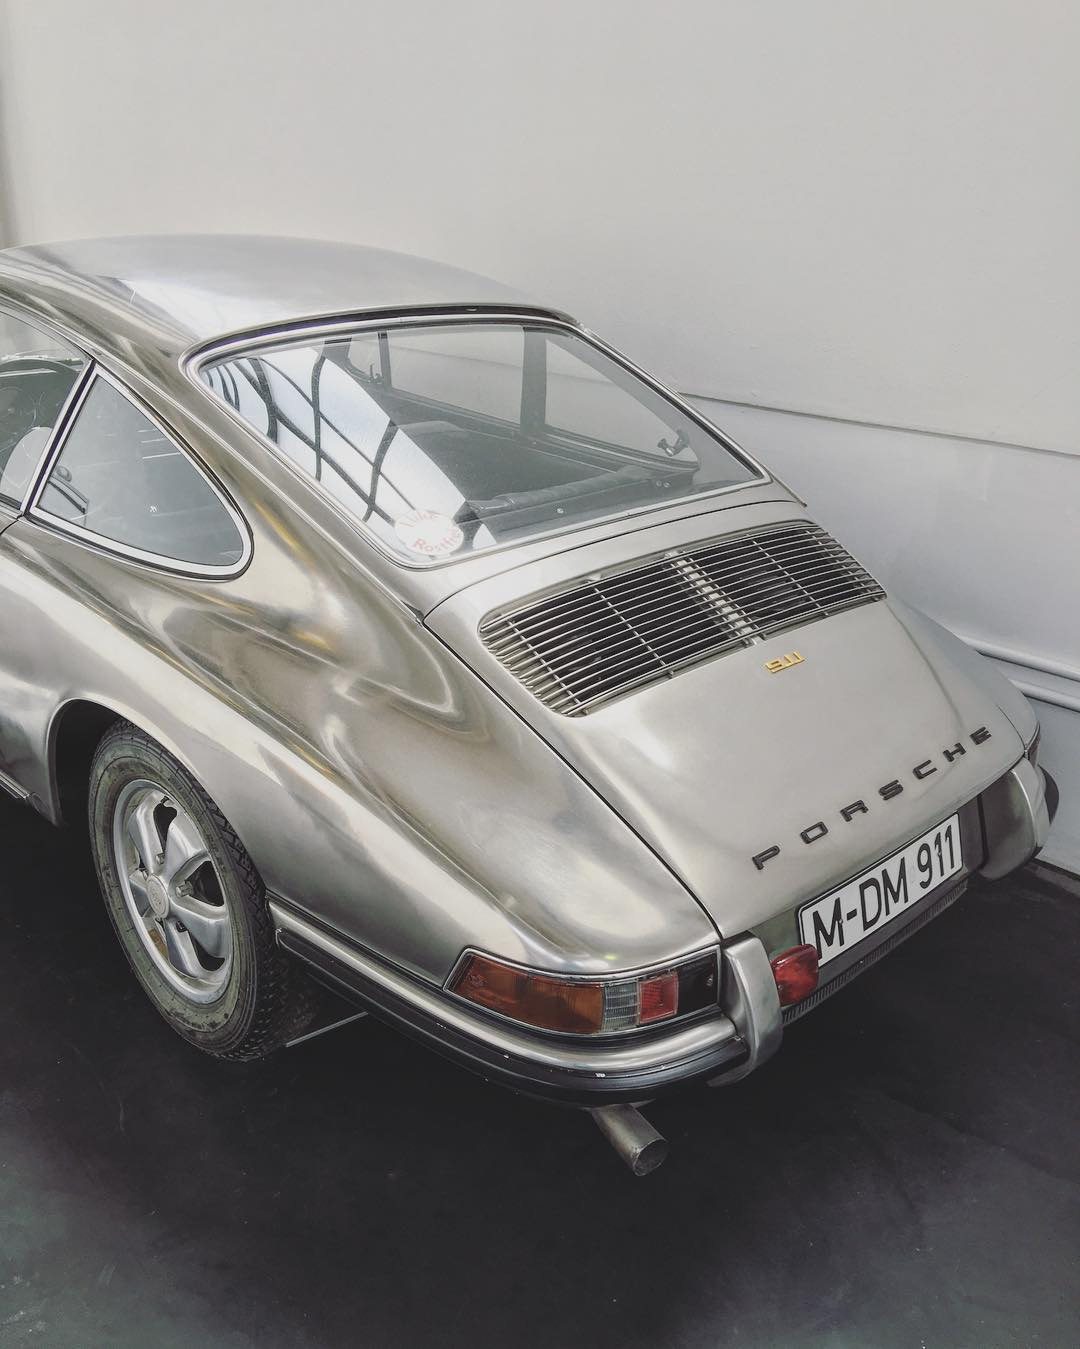 This was the car they used in 1967 as the test model for the use and processing of non-corroding steels in Automobile manufacturing. In it's 7 years and 150, 000 km of operation the material passed all tests. An Historic car. Plus it looks dope.  #Porsche #911s